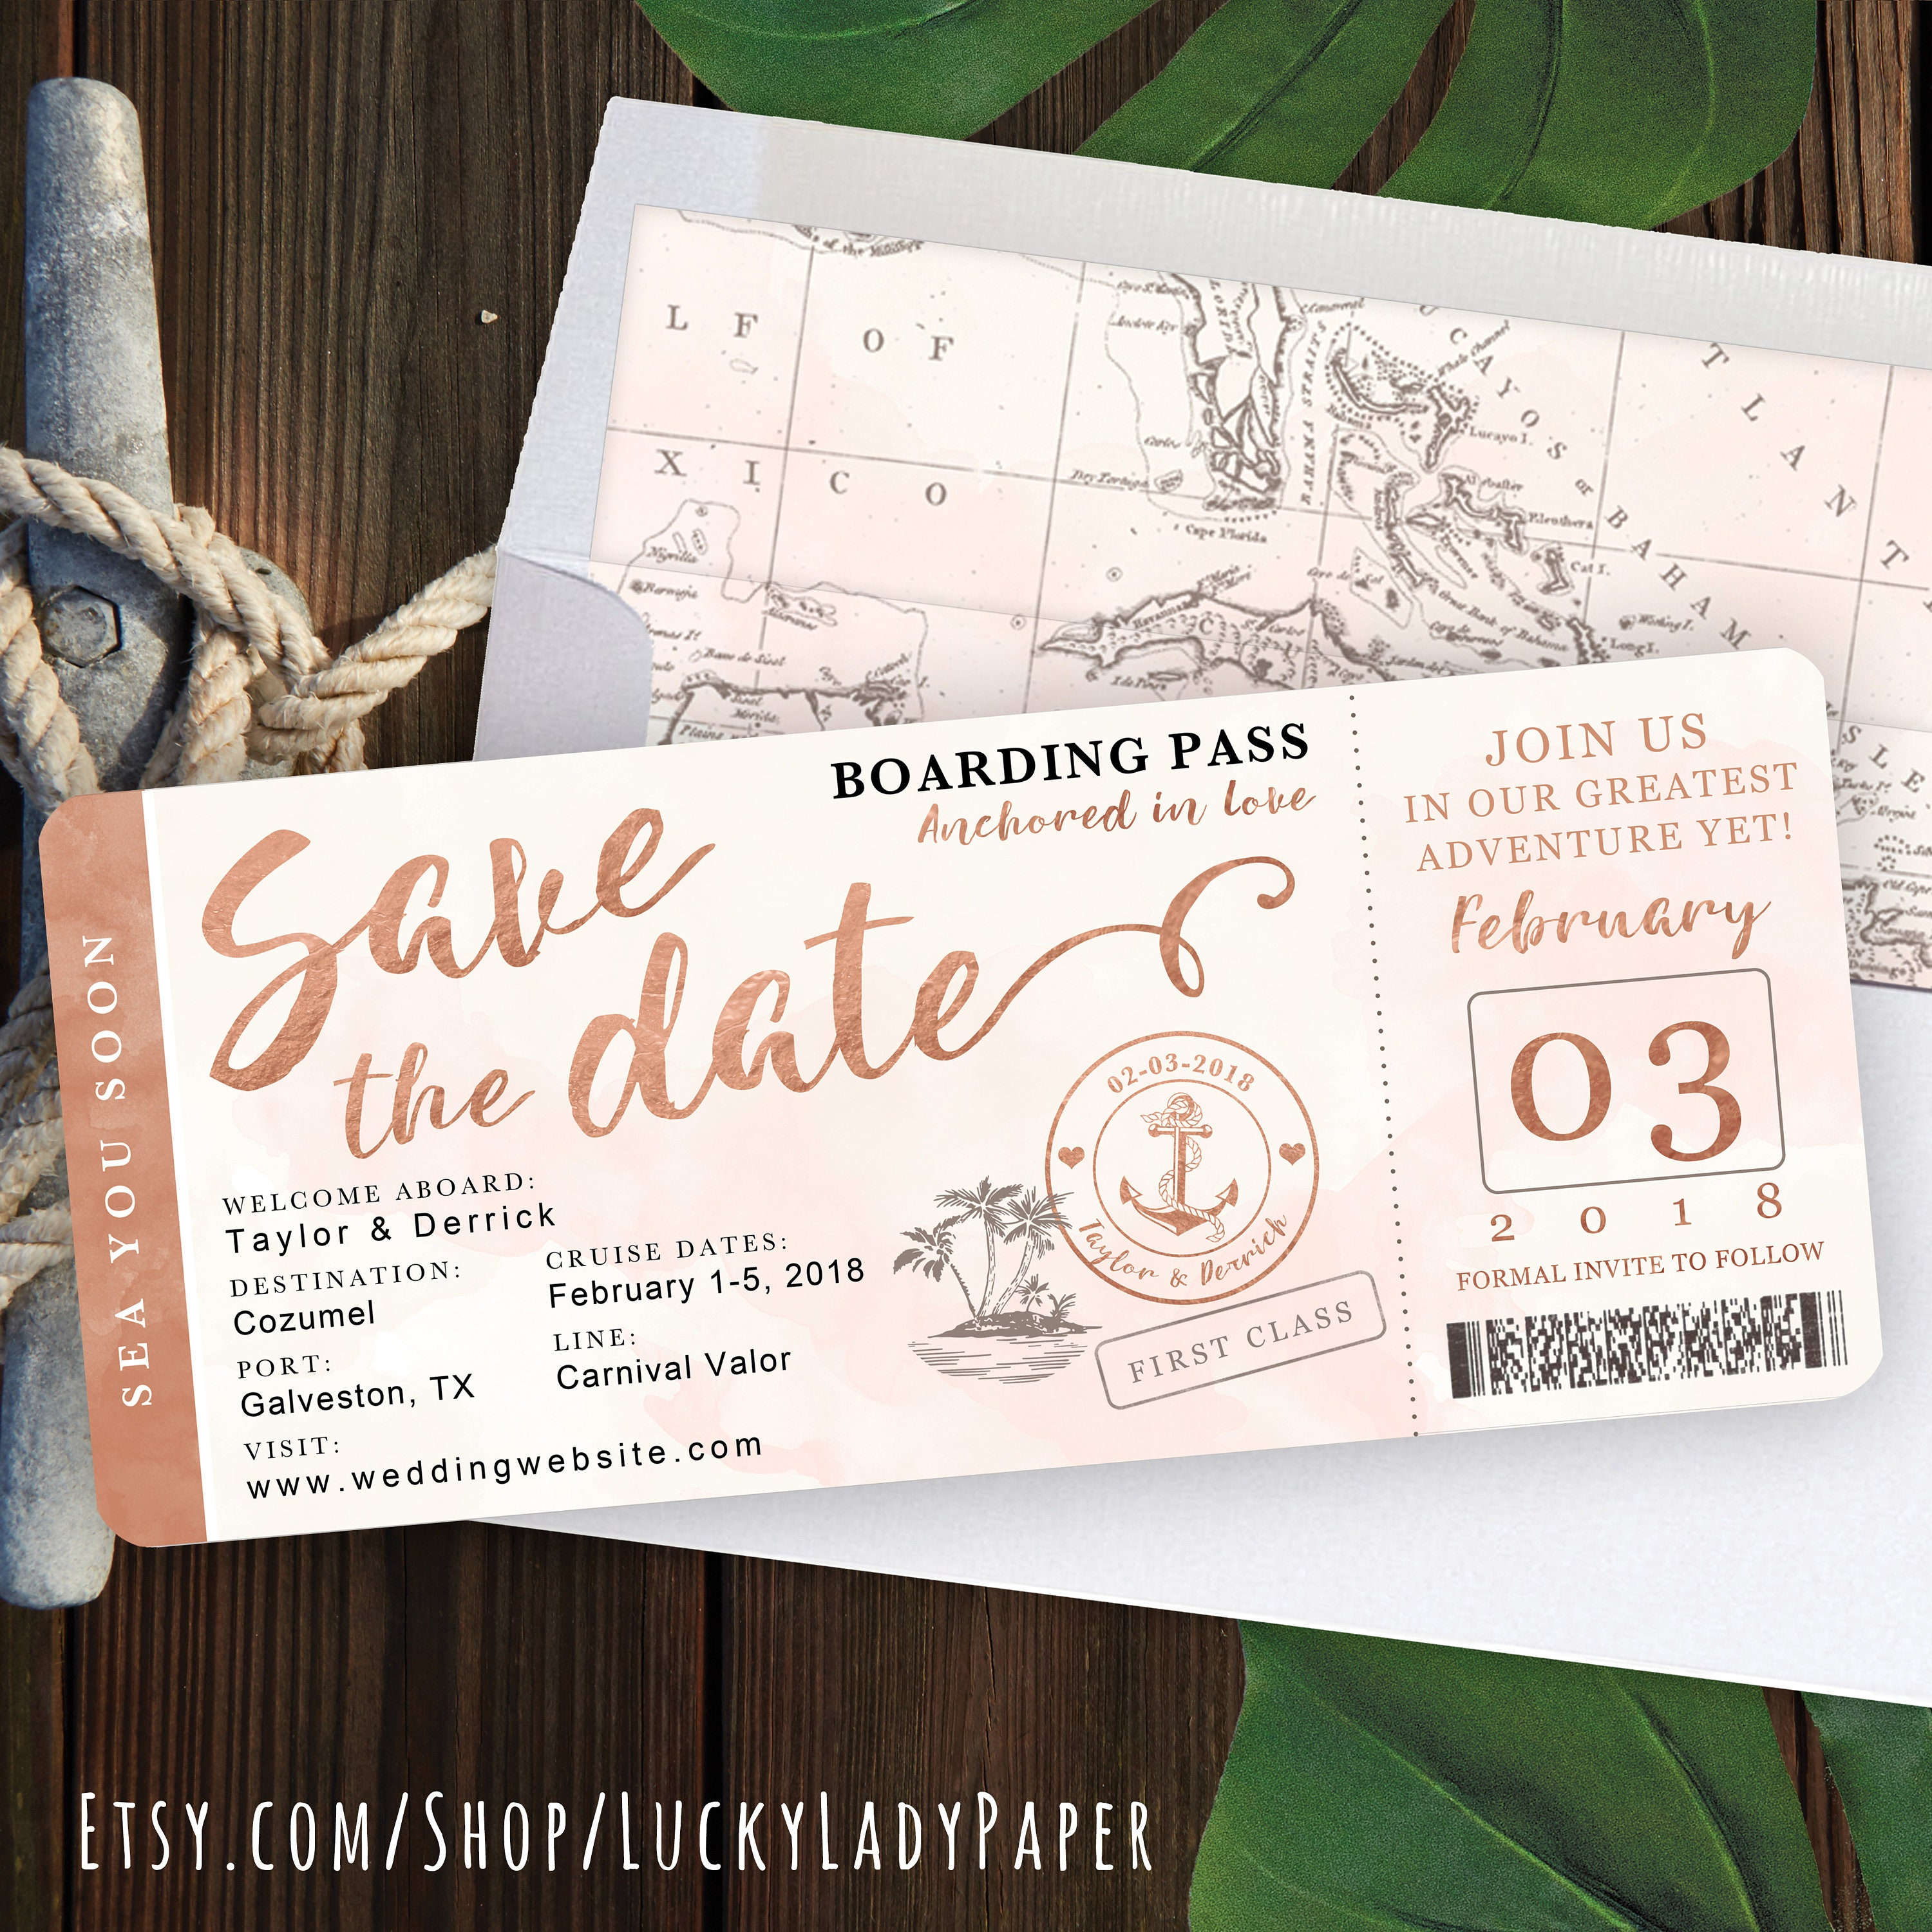 Save The Date Destination Wedding Invitations: Destination Wedding Boarding Pass Save The Date Invitation